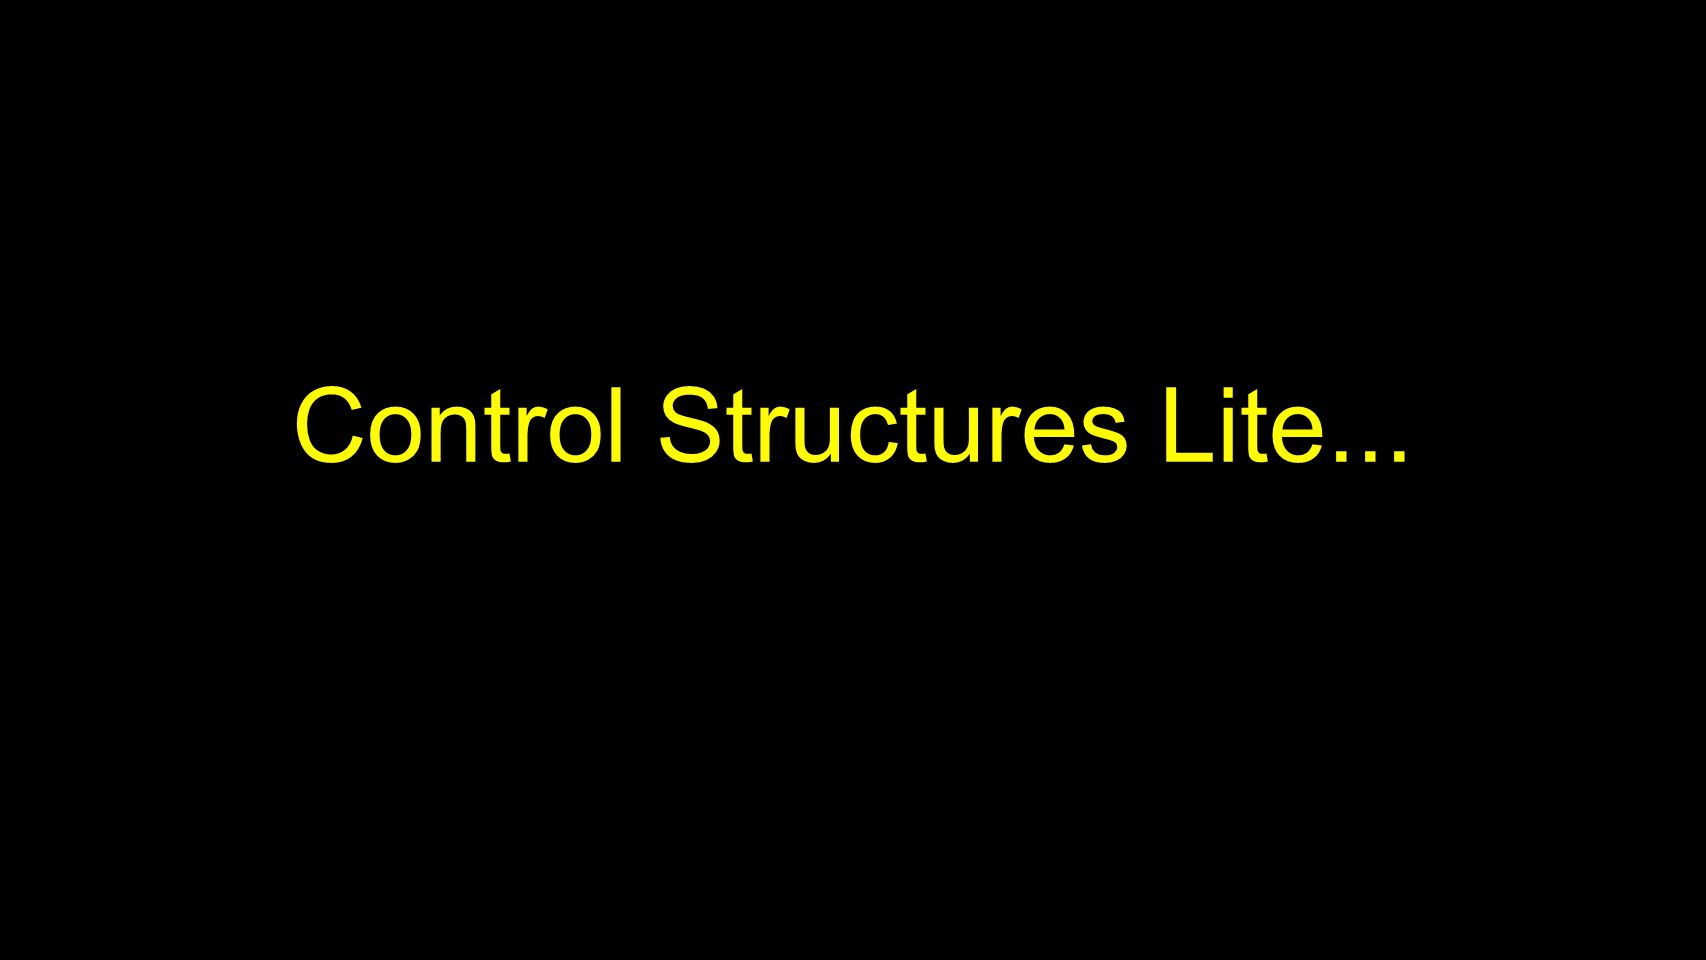 Control Structures Lite...